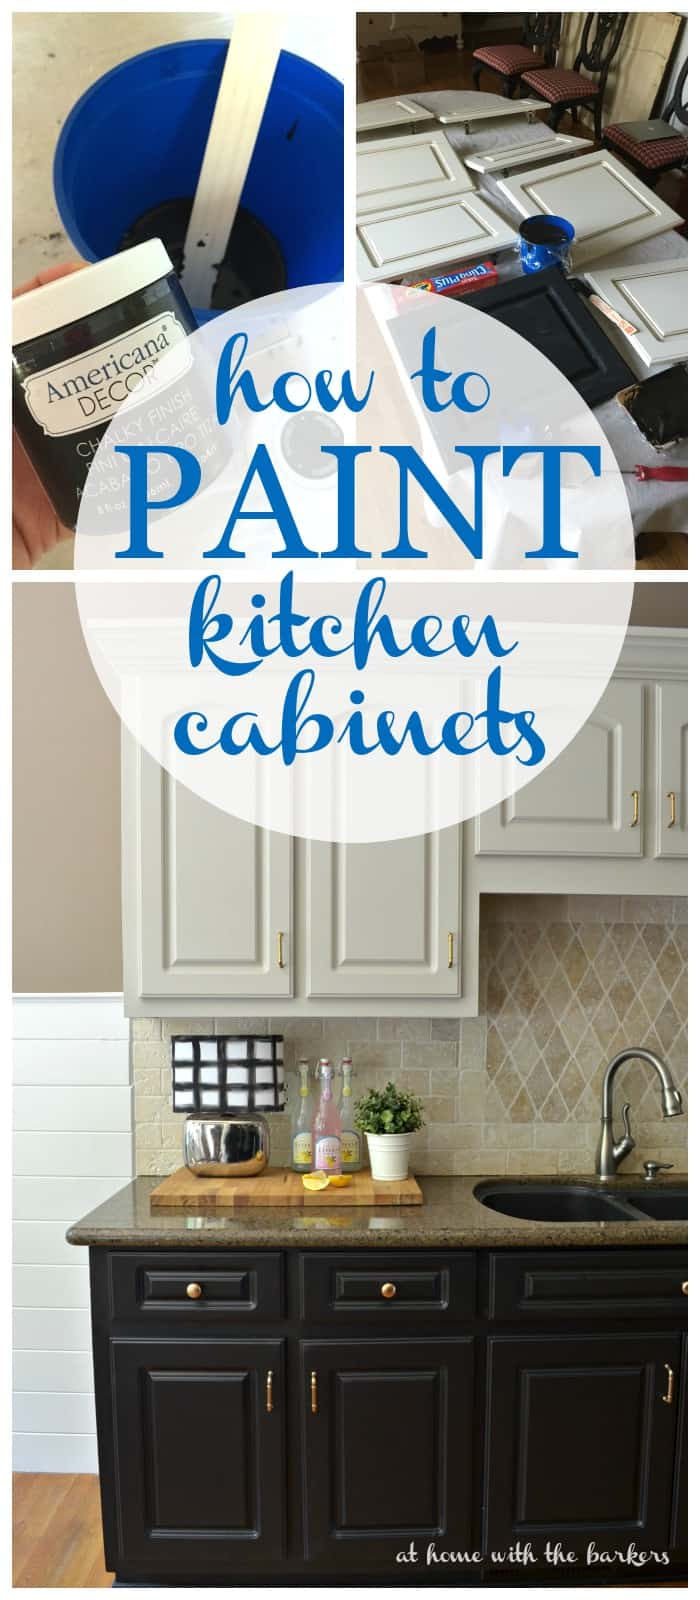 how to paint kitchen cabinets with chalky finish paint how to paint kitchen cabinets  at home with the barkers  rh   athomewiththebarkers com